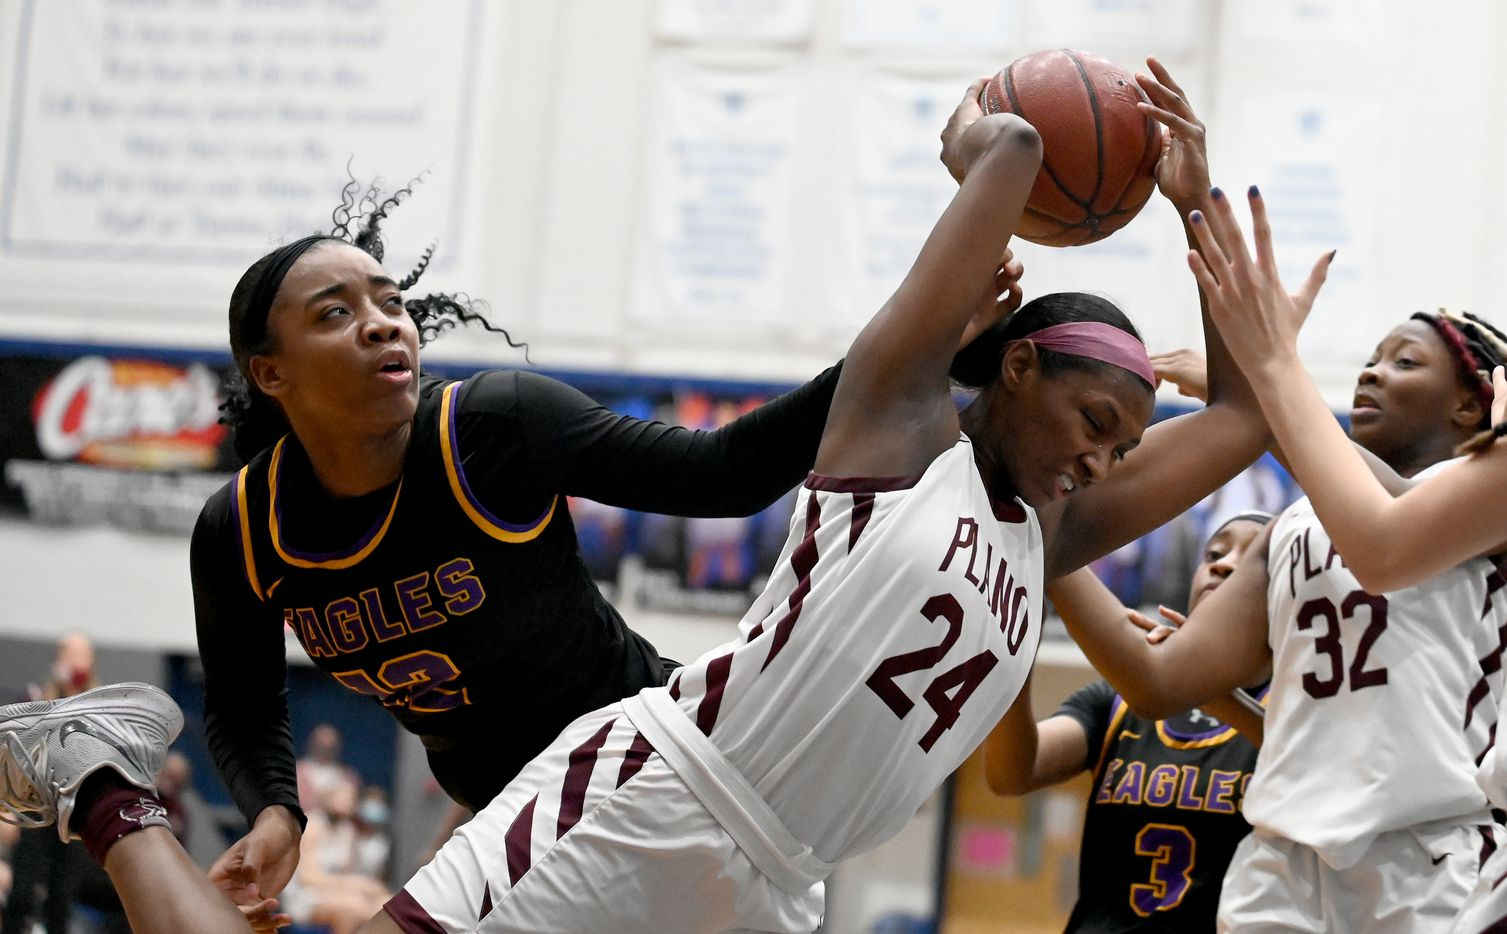 Plano's Amaya Brannon (24) grabs a rebound in front of Richardson's Kaia Ponder (12) in the second half of a Class 6A girls high school playoff basketball game between Plano vs. Richardson, Monday, Feb. 22, 2020, in Carrollton, Texas. (Matt Strasen/Special Contributor)